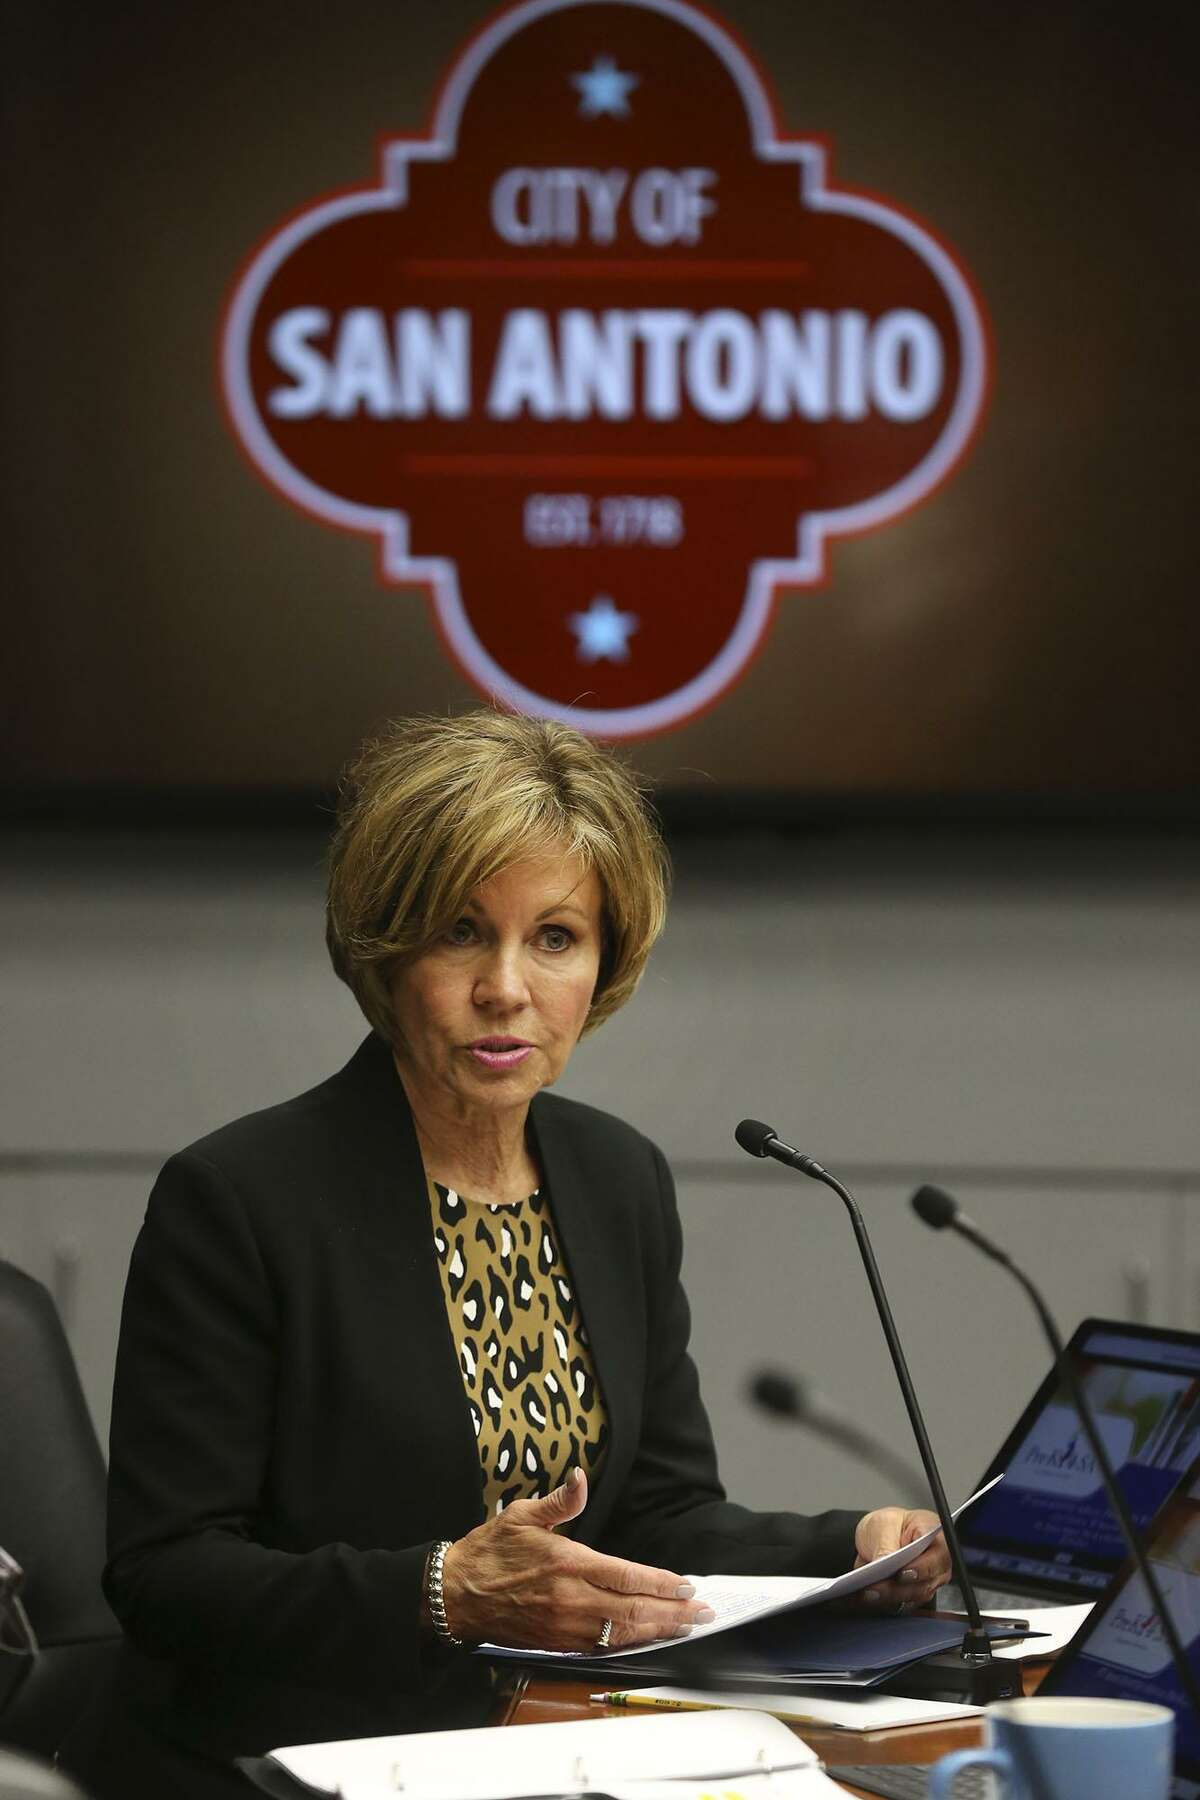 San Antonio City Manager City Sheryl Sculley speaks about the Pre-K 4 SA program Wednesday May 9, 2018 to the San Antonio city council about the 2019 annual budget. The $47.3 million budget is funded by a 1/8th cent sales tax. Pre-K 4 SA is a full-day prekindergarten program that also offers free afterschool care until 6:00 p.m.